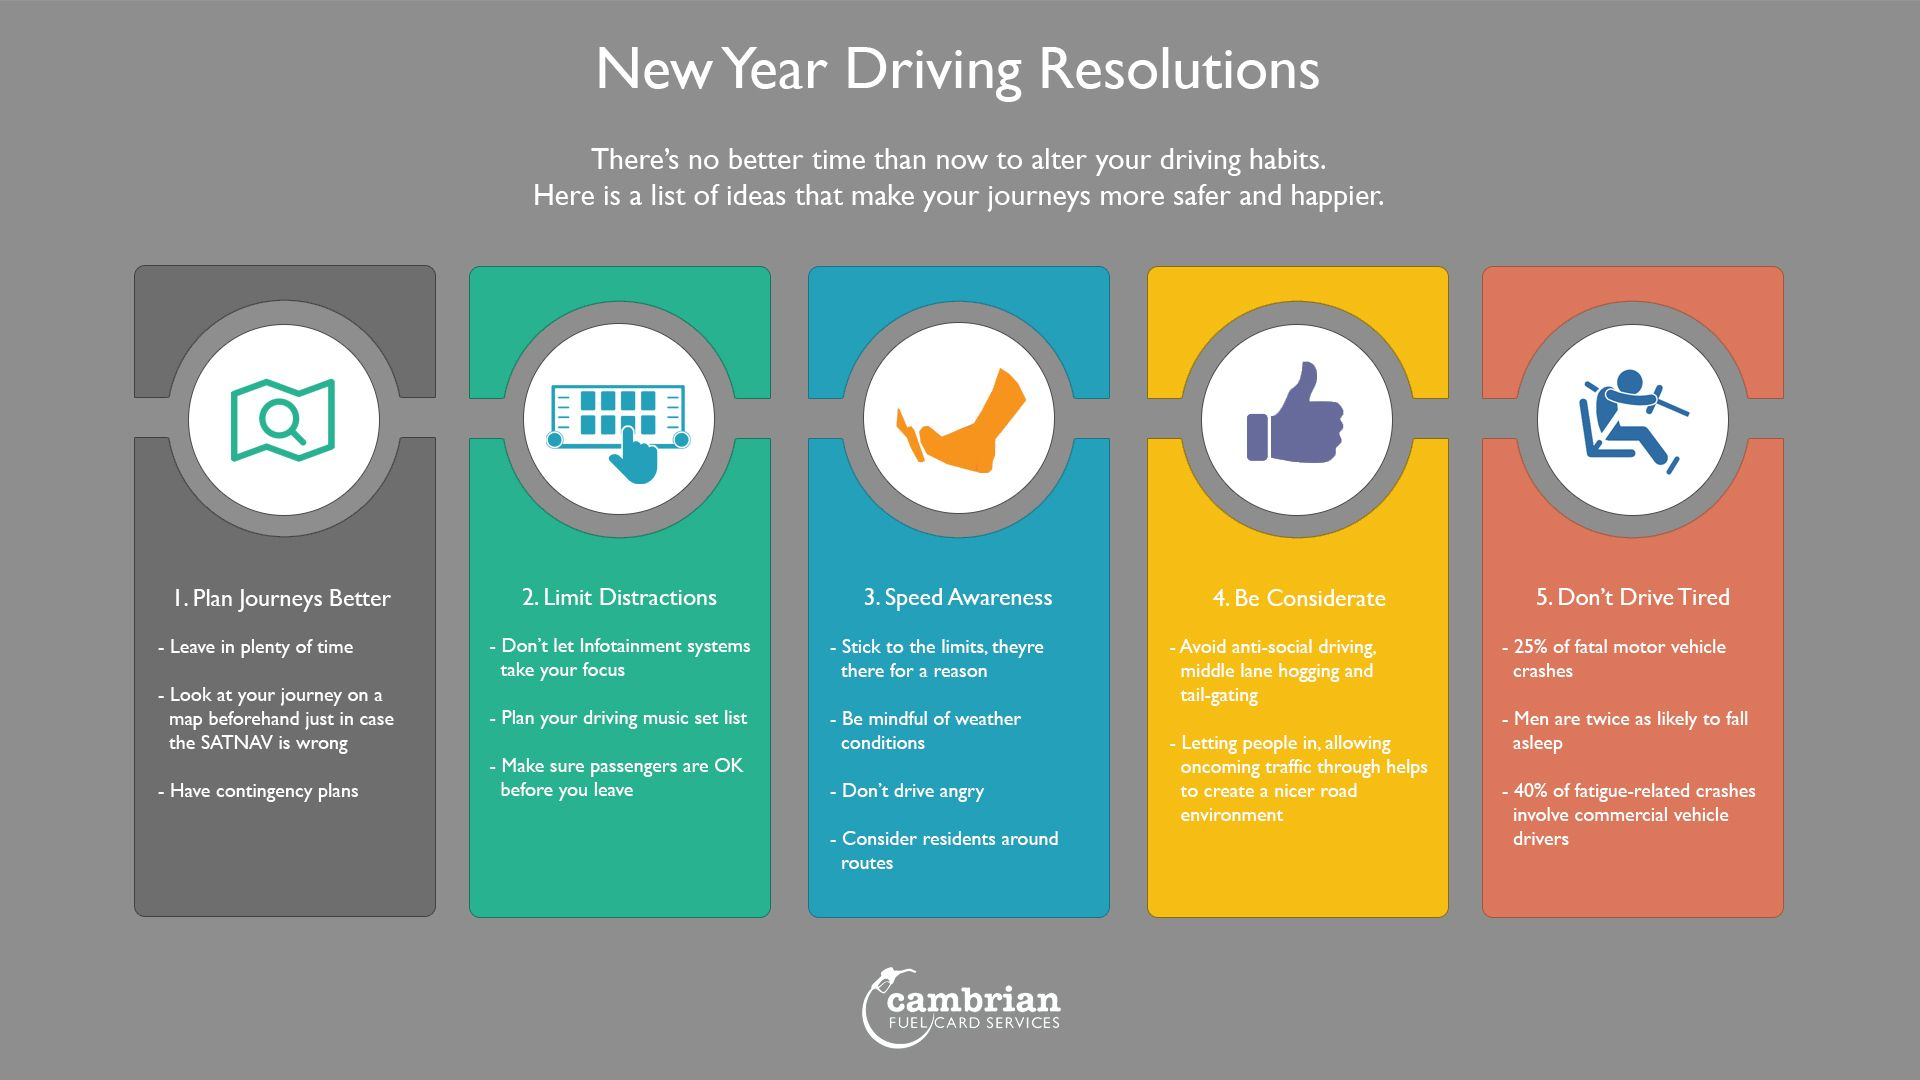 New Year Driving Resolutions Driving Habits How To Plan Limit Distraction